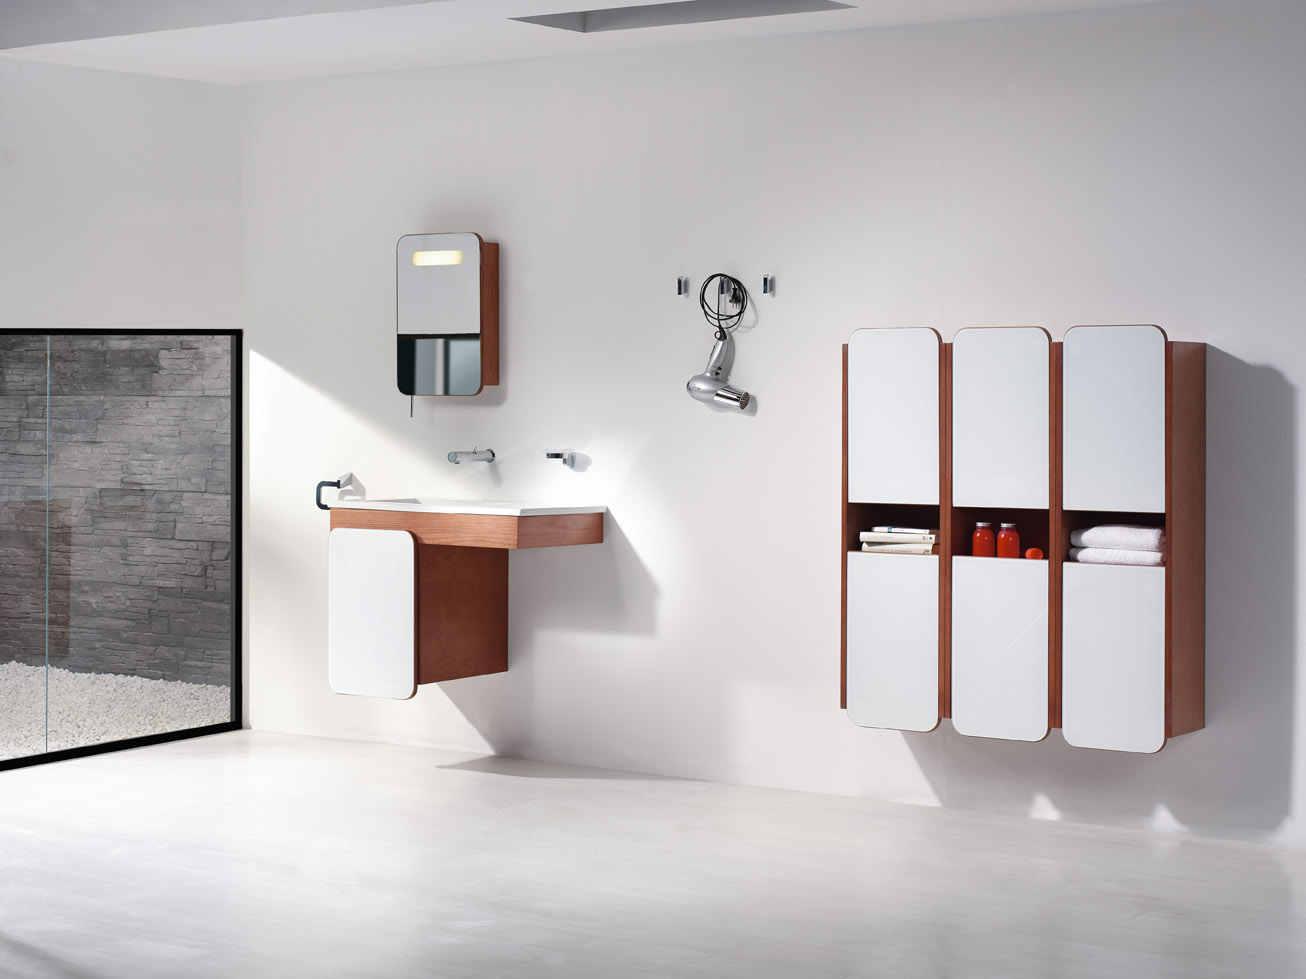 Baños Minimalistas Imagenes:Small Wall Mounted Bathroom Sinks